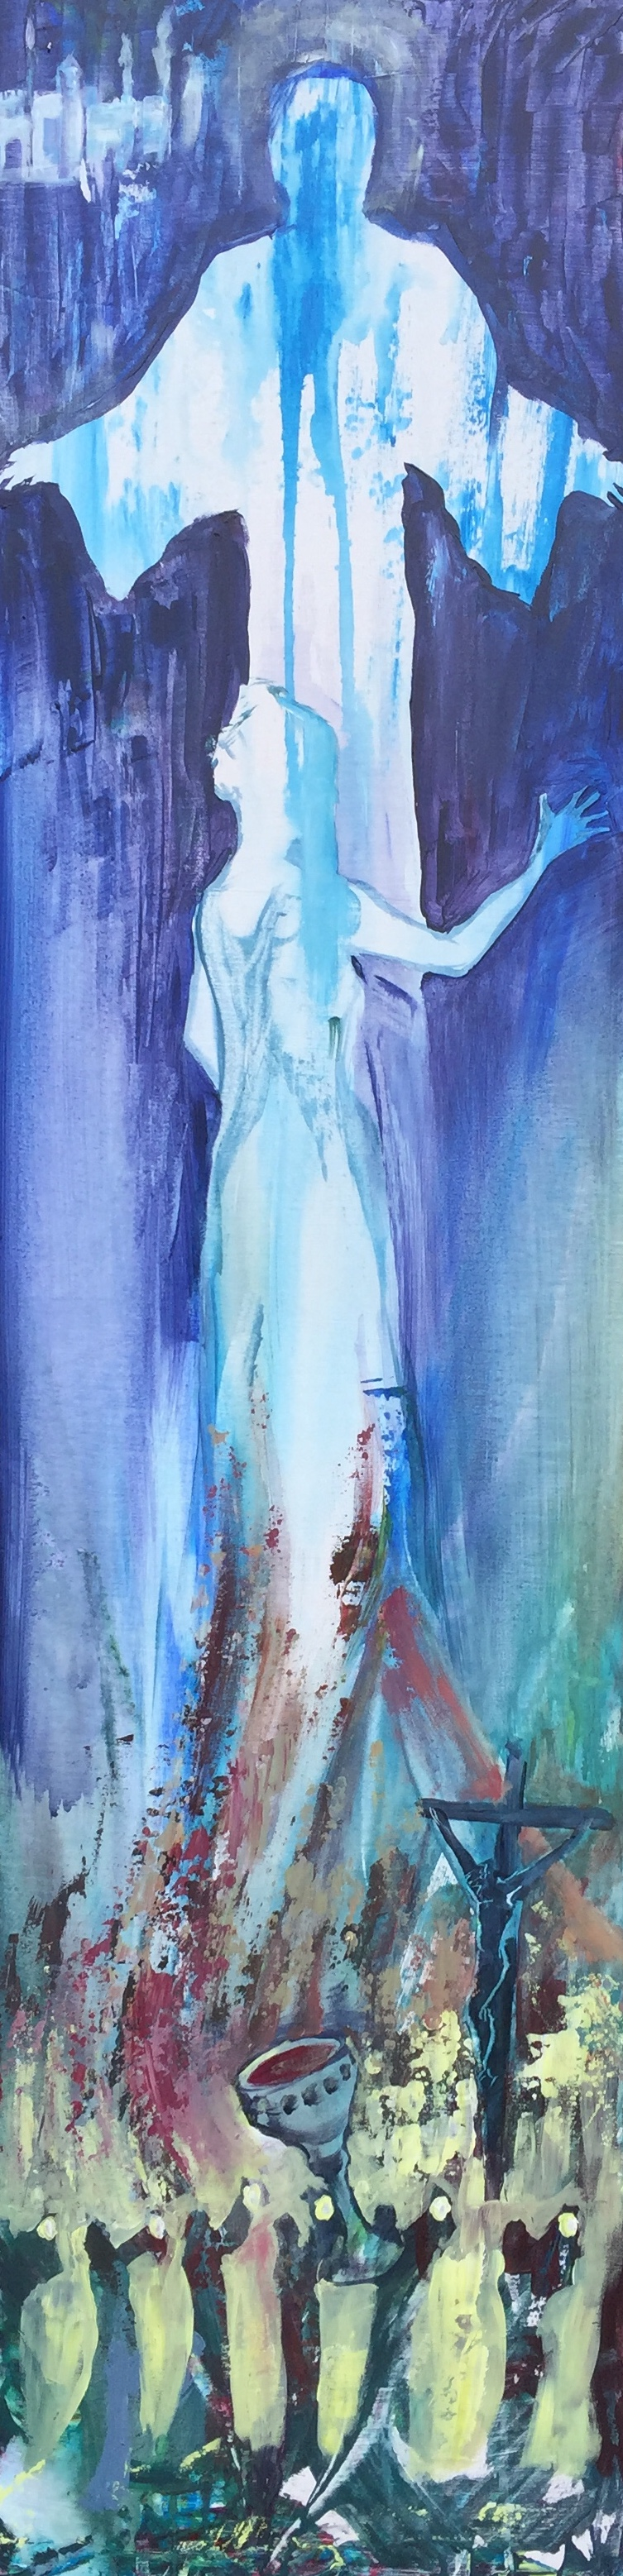 """The Bridegroom Returns"". Acrylic on panel. 12x48"". 4.21.2019. Live at Threshold Church. Approx. 60 min."